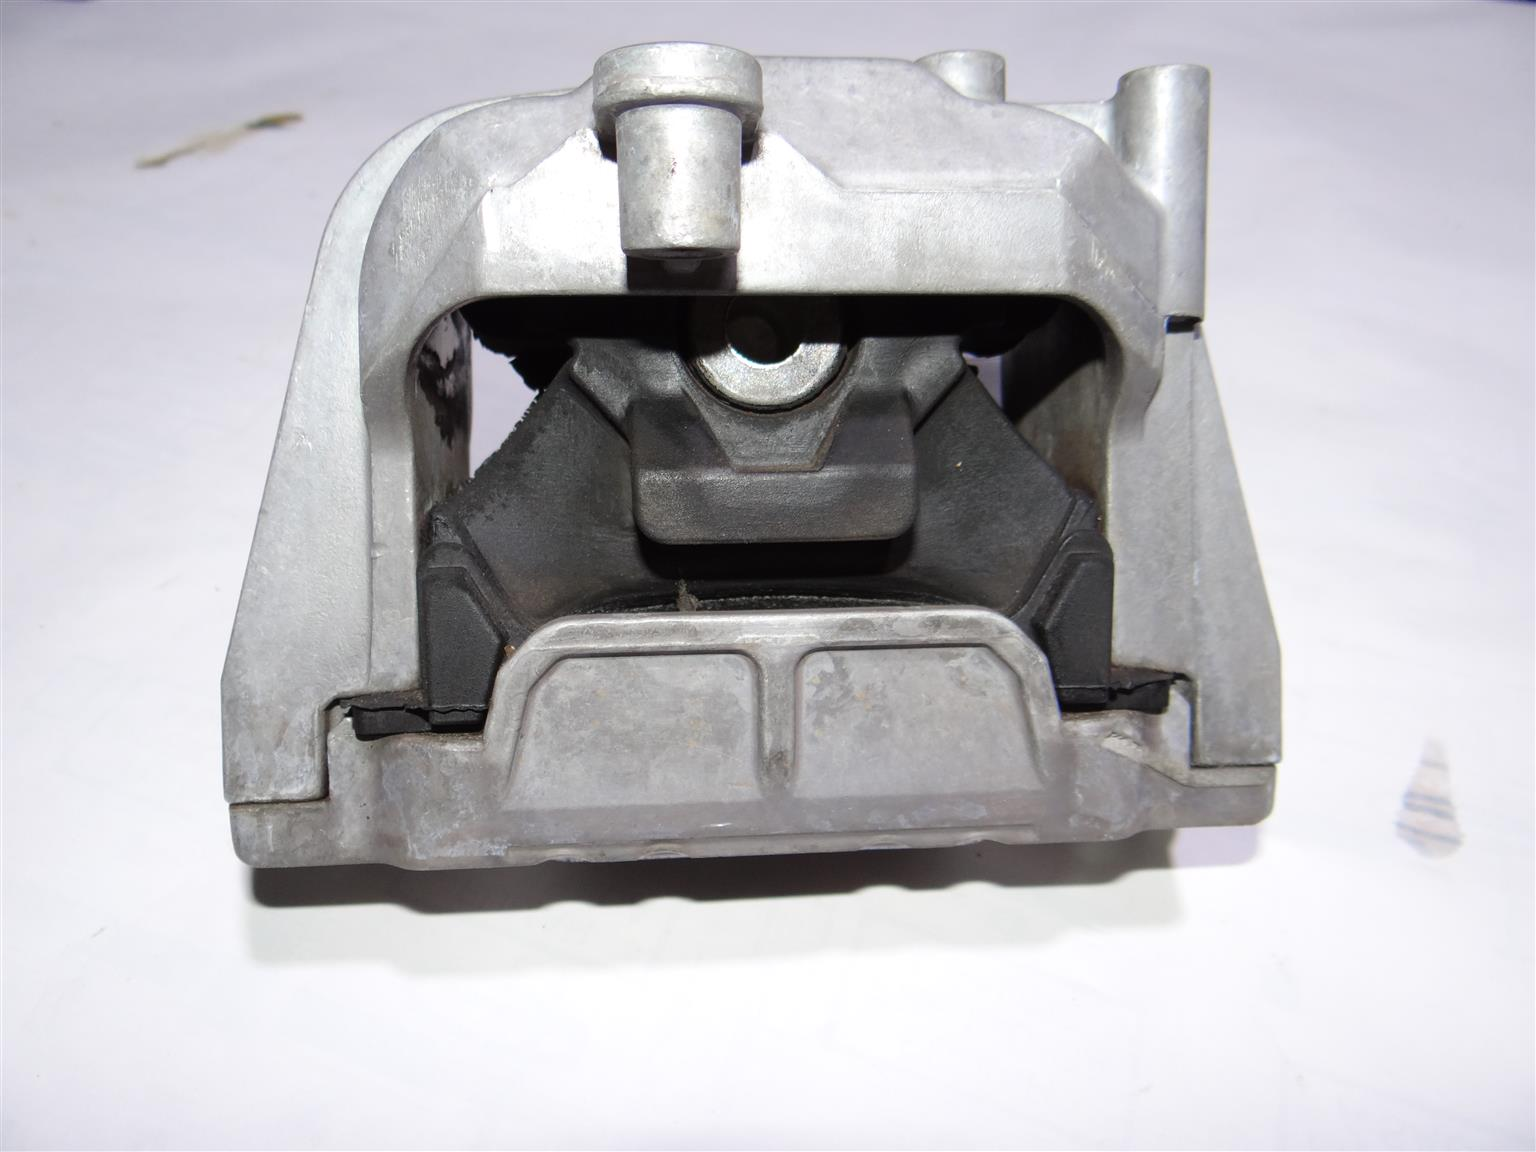 VW 1.4 TSI Mountings for Engine and transmission